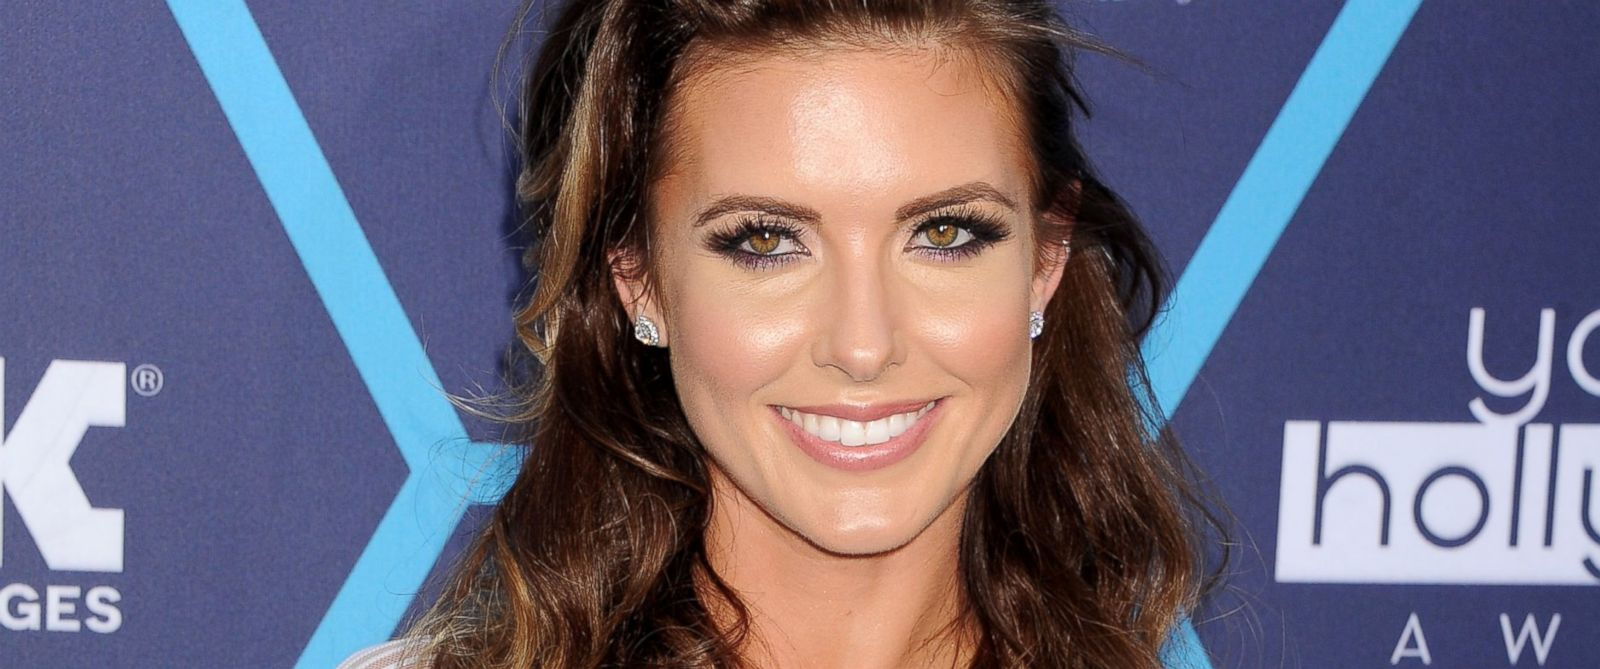 PHOTO: Audrina Patridge arrives at the 16th Annual Young Hollywood Awards at The Wiltern, July 27, 2014, in Los Angeles.